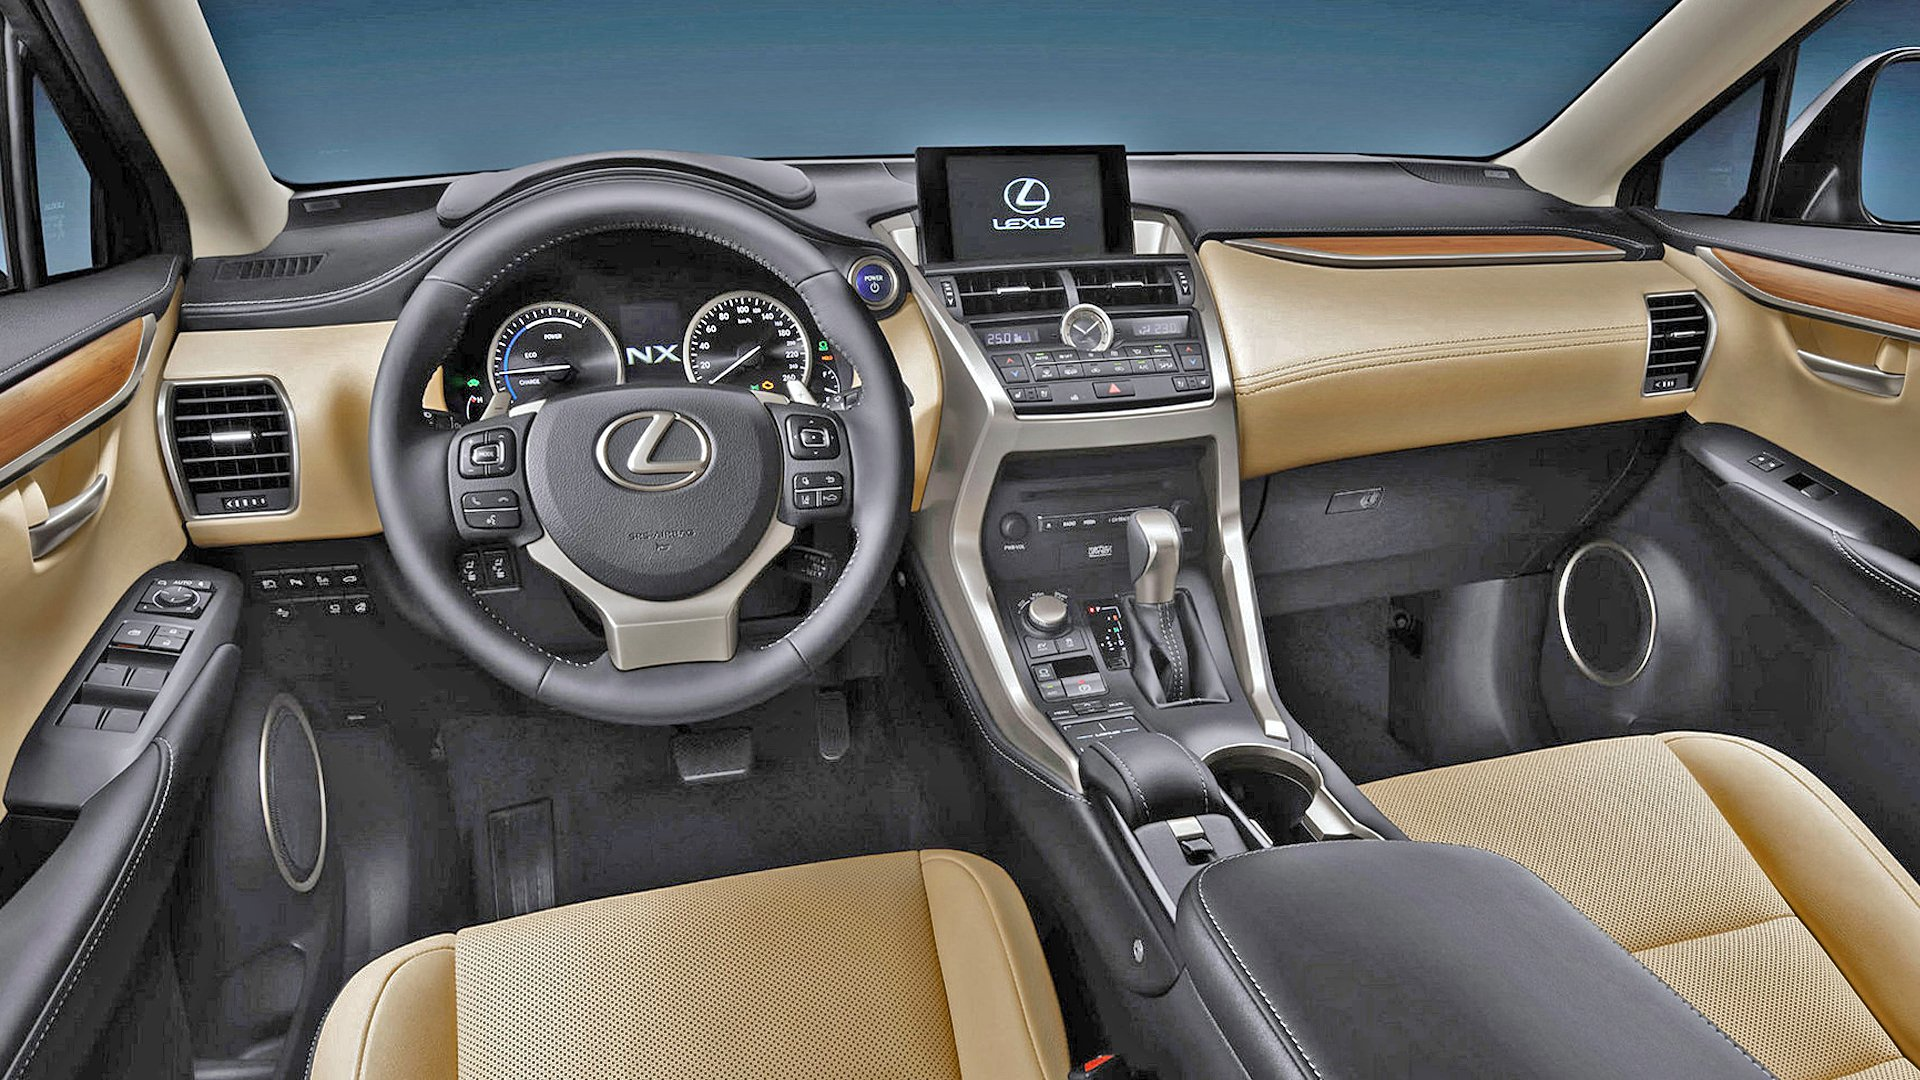 New 2019 Lexus NX 200 Interior Design